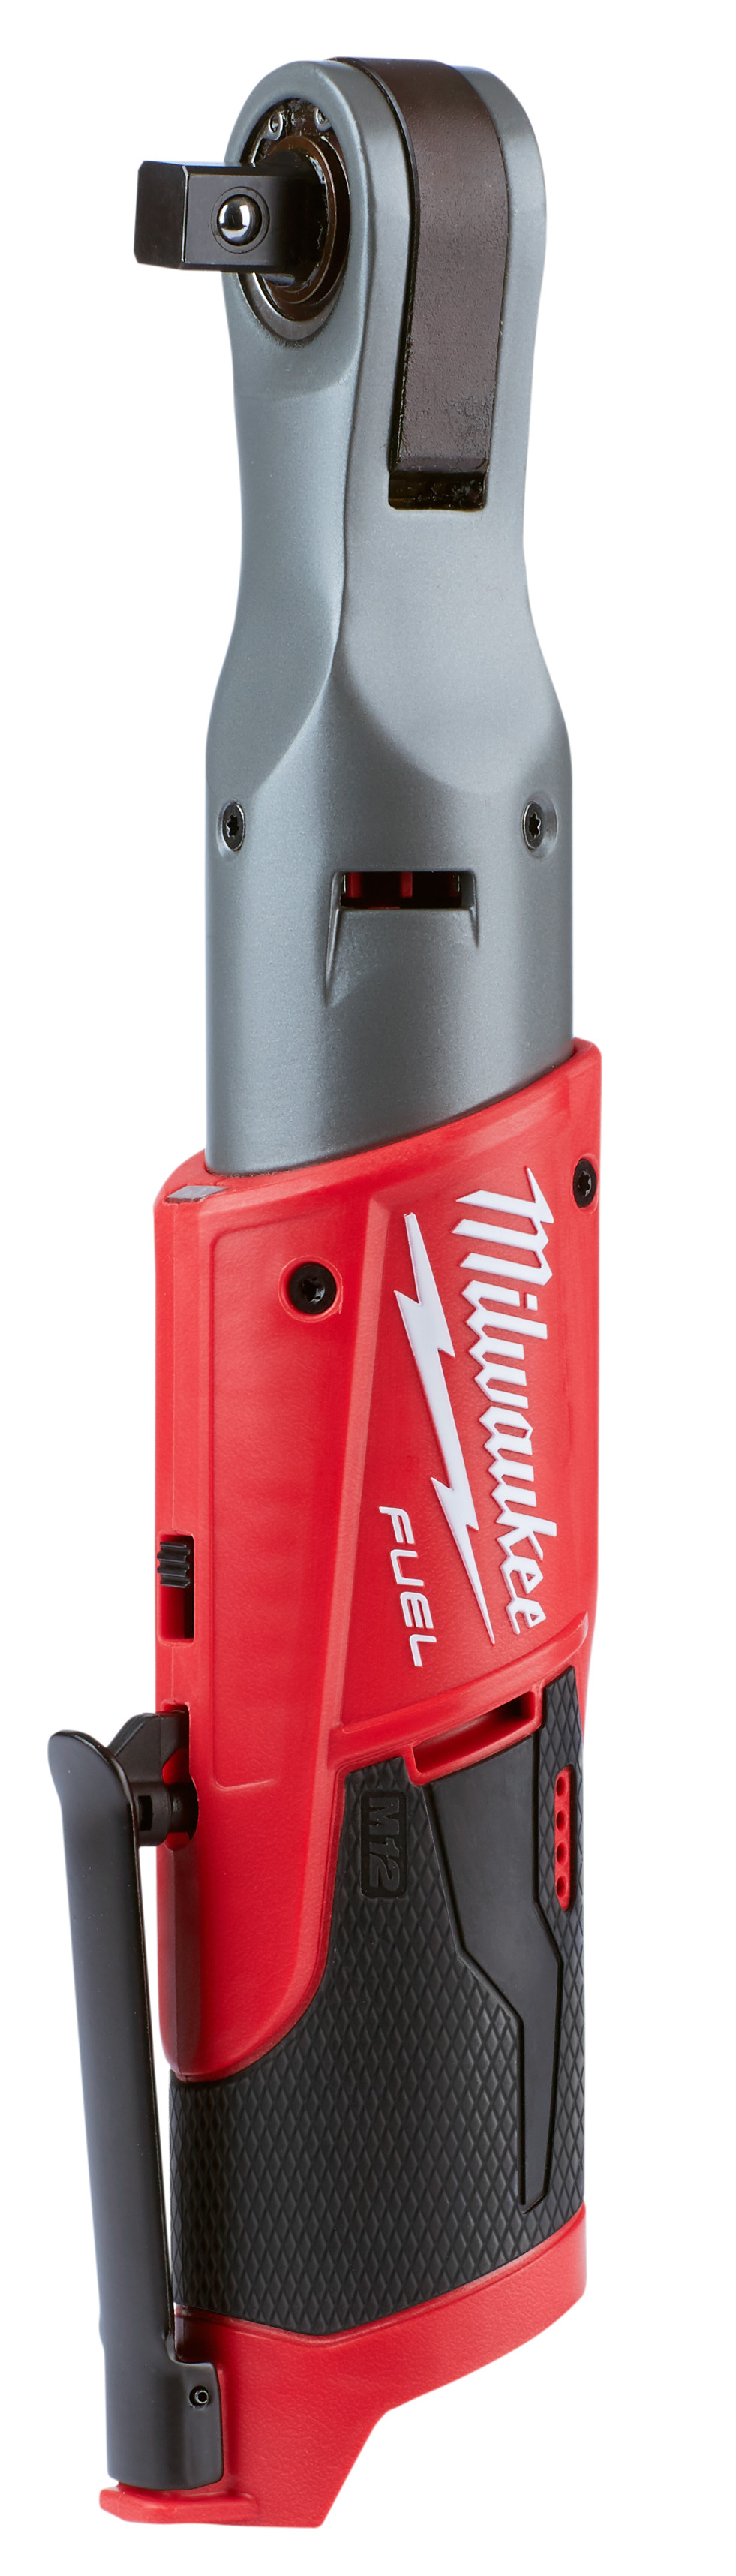 Milwaukee® M12 FUEL™ 2558-20 Cordless Ratchet, 1/2 in Drive, 60 ft-lb, 0 to 175 rpm, 12 VDC, Lithium-Ion Battery, 3.8 in OAL